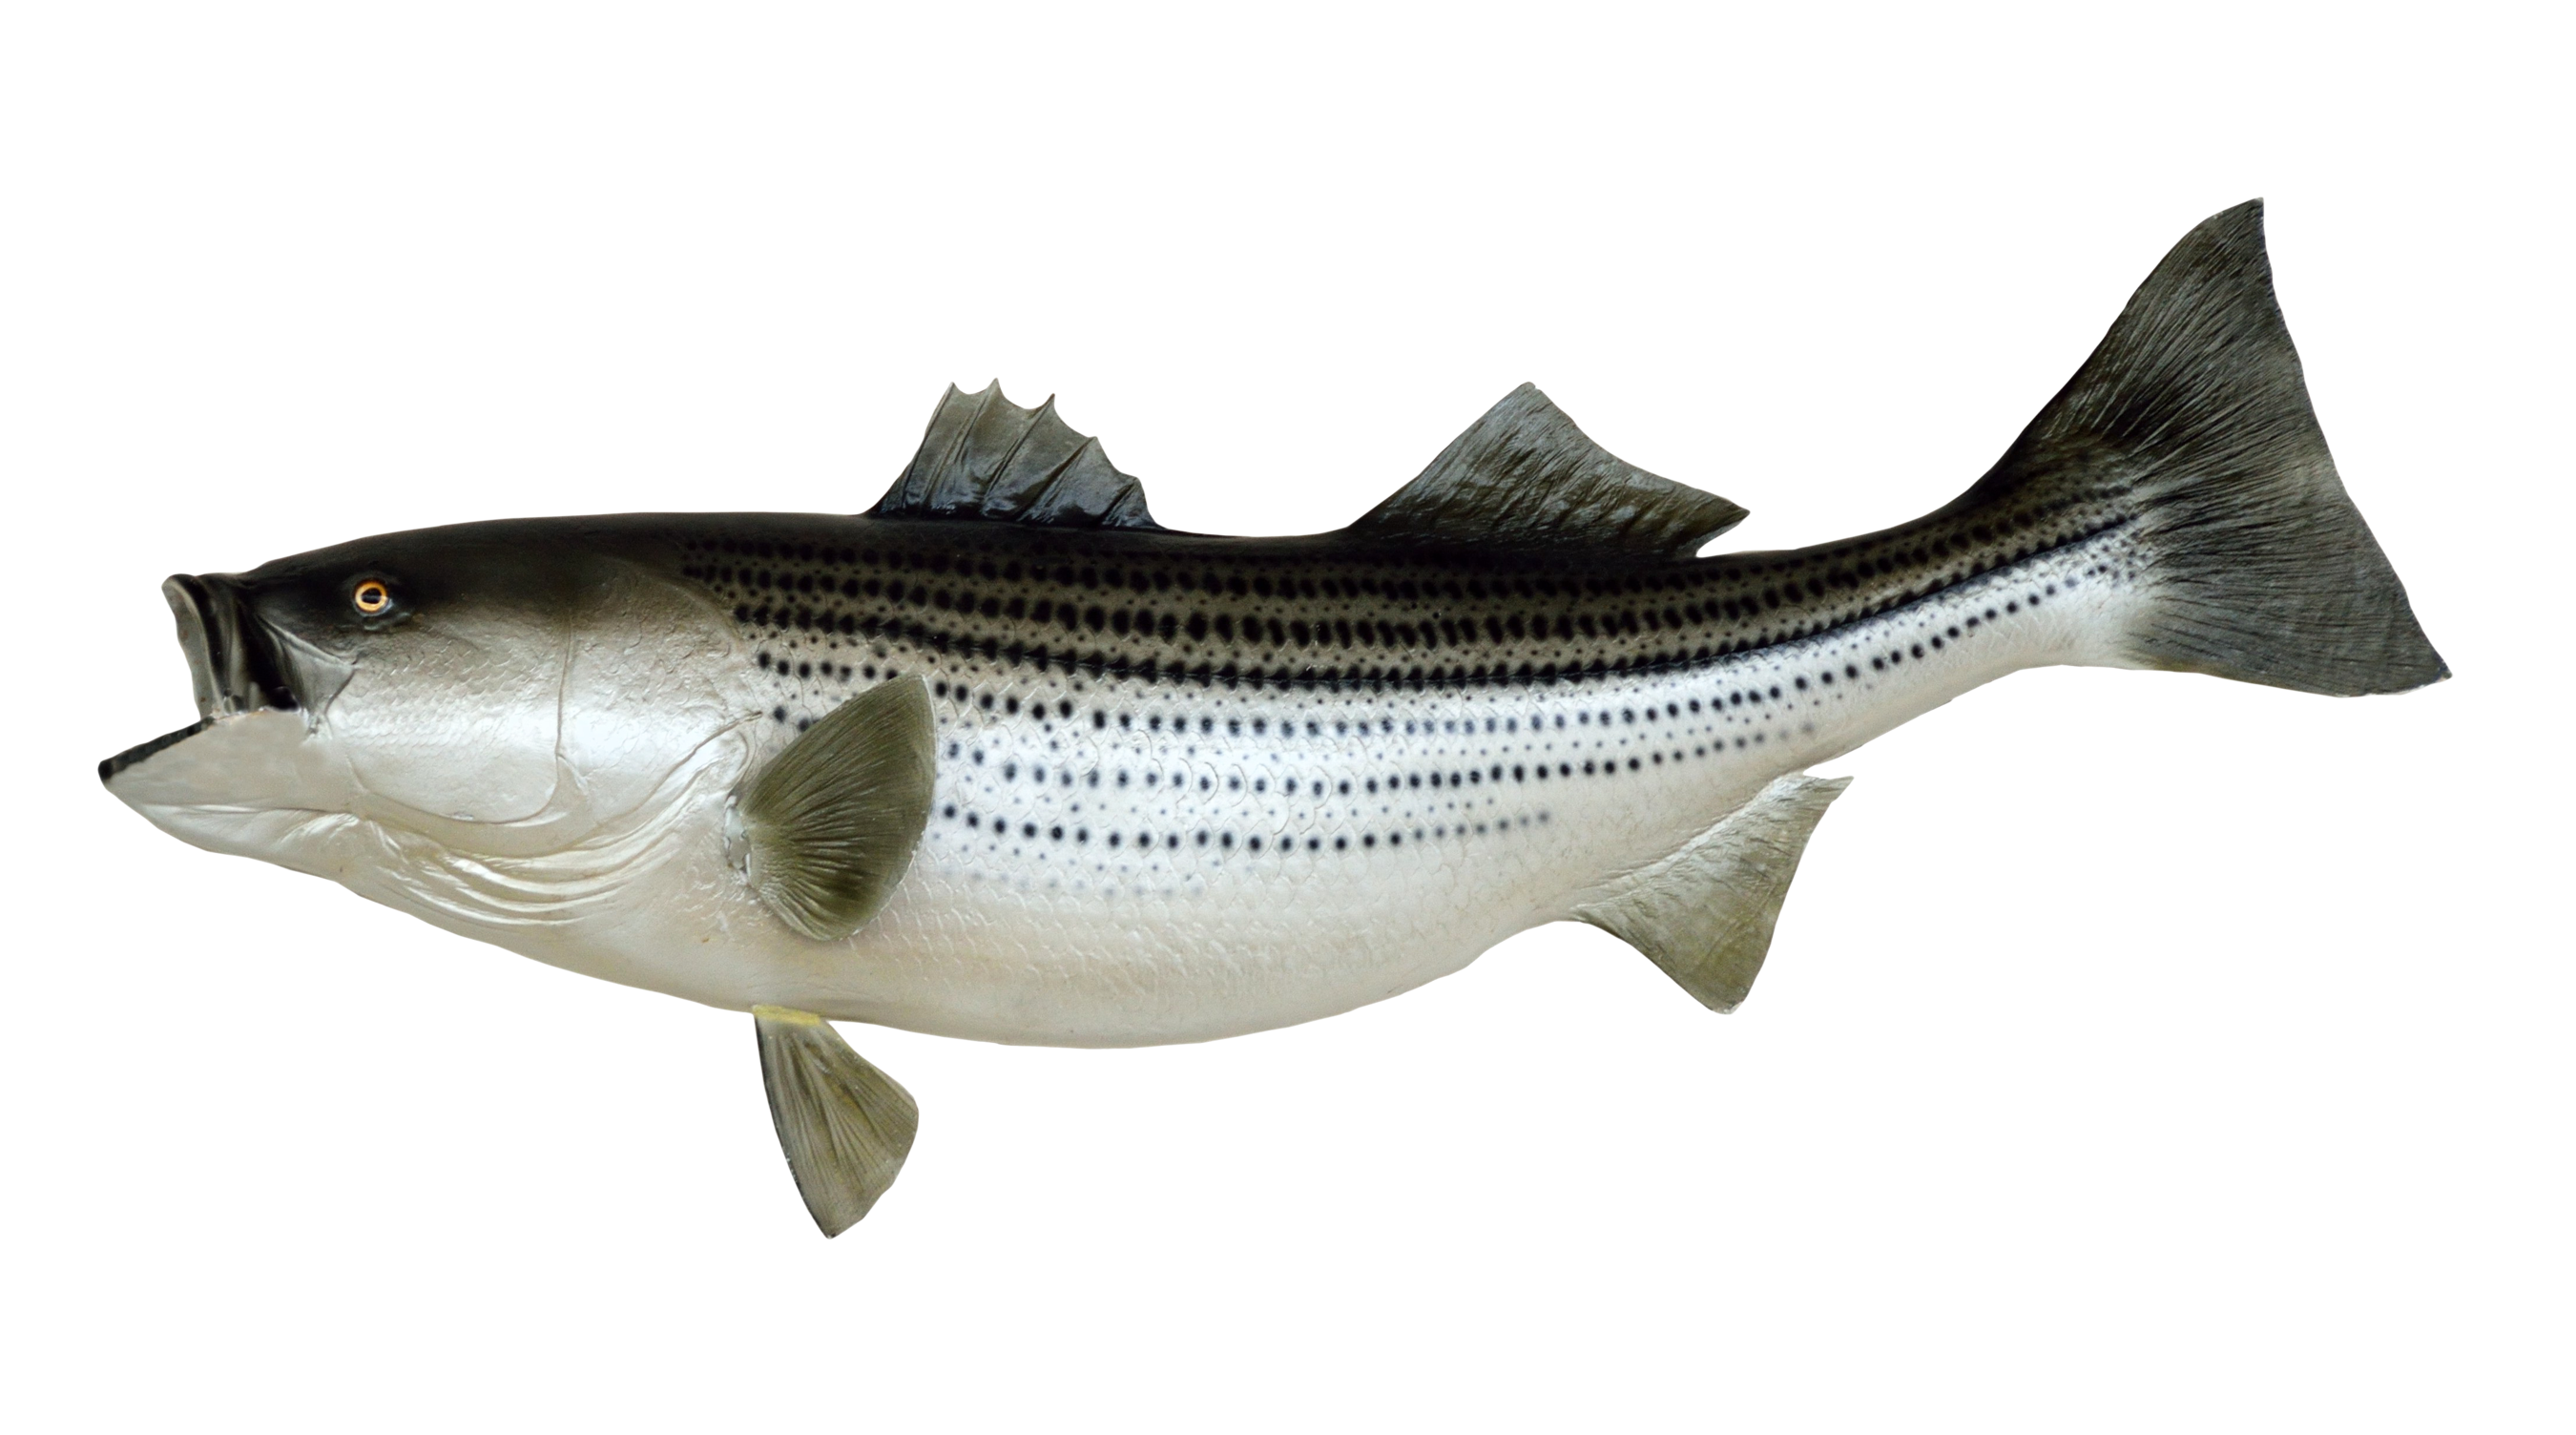 Fish PNG Transparent